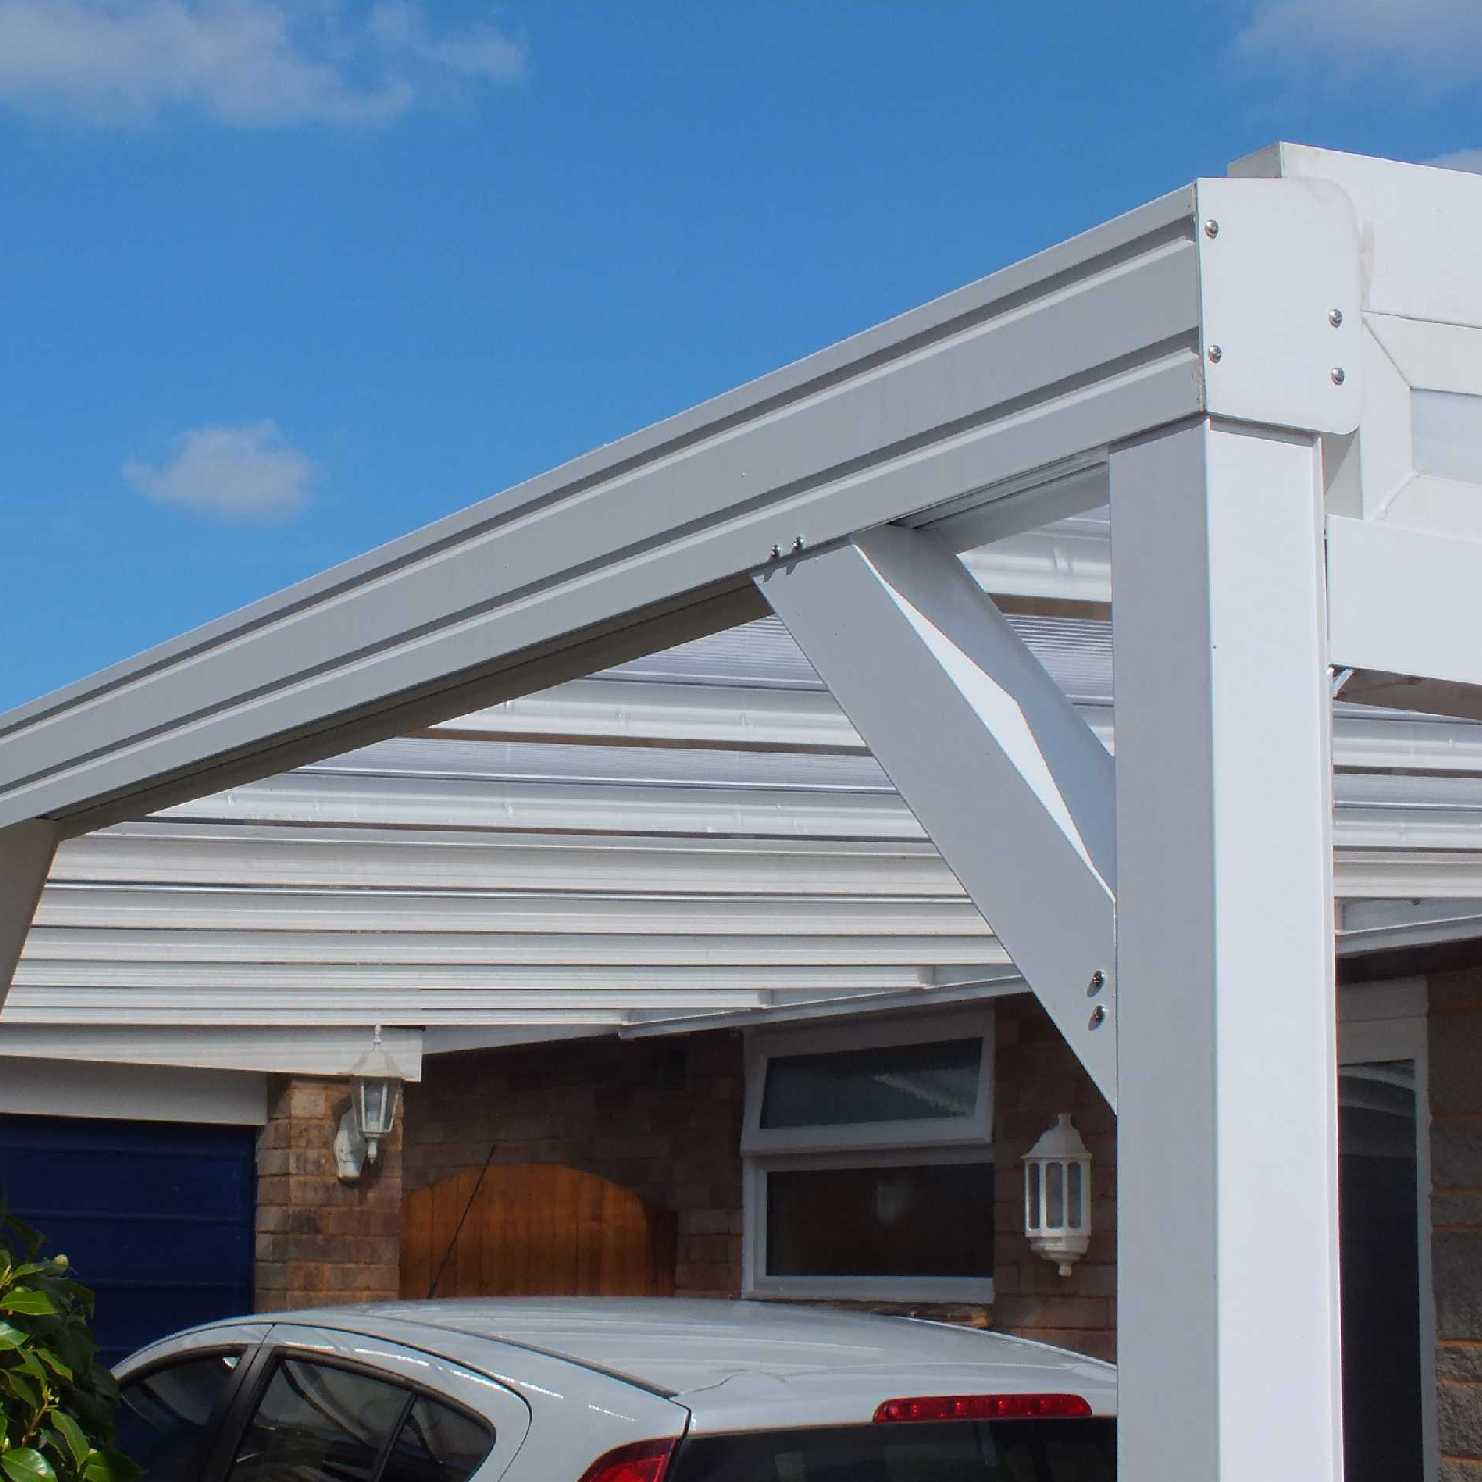 Buy Omega Smart White Lean-To Canopy with 16mm Polycarbonate Glazing - 8.4m (W) x 4.0m (P), (4) Supporting Posts online today